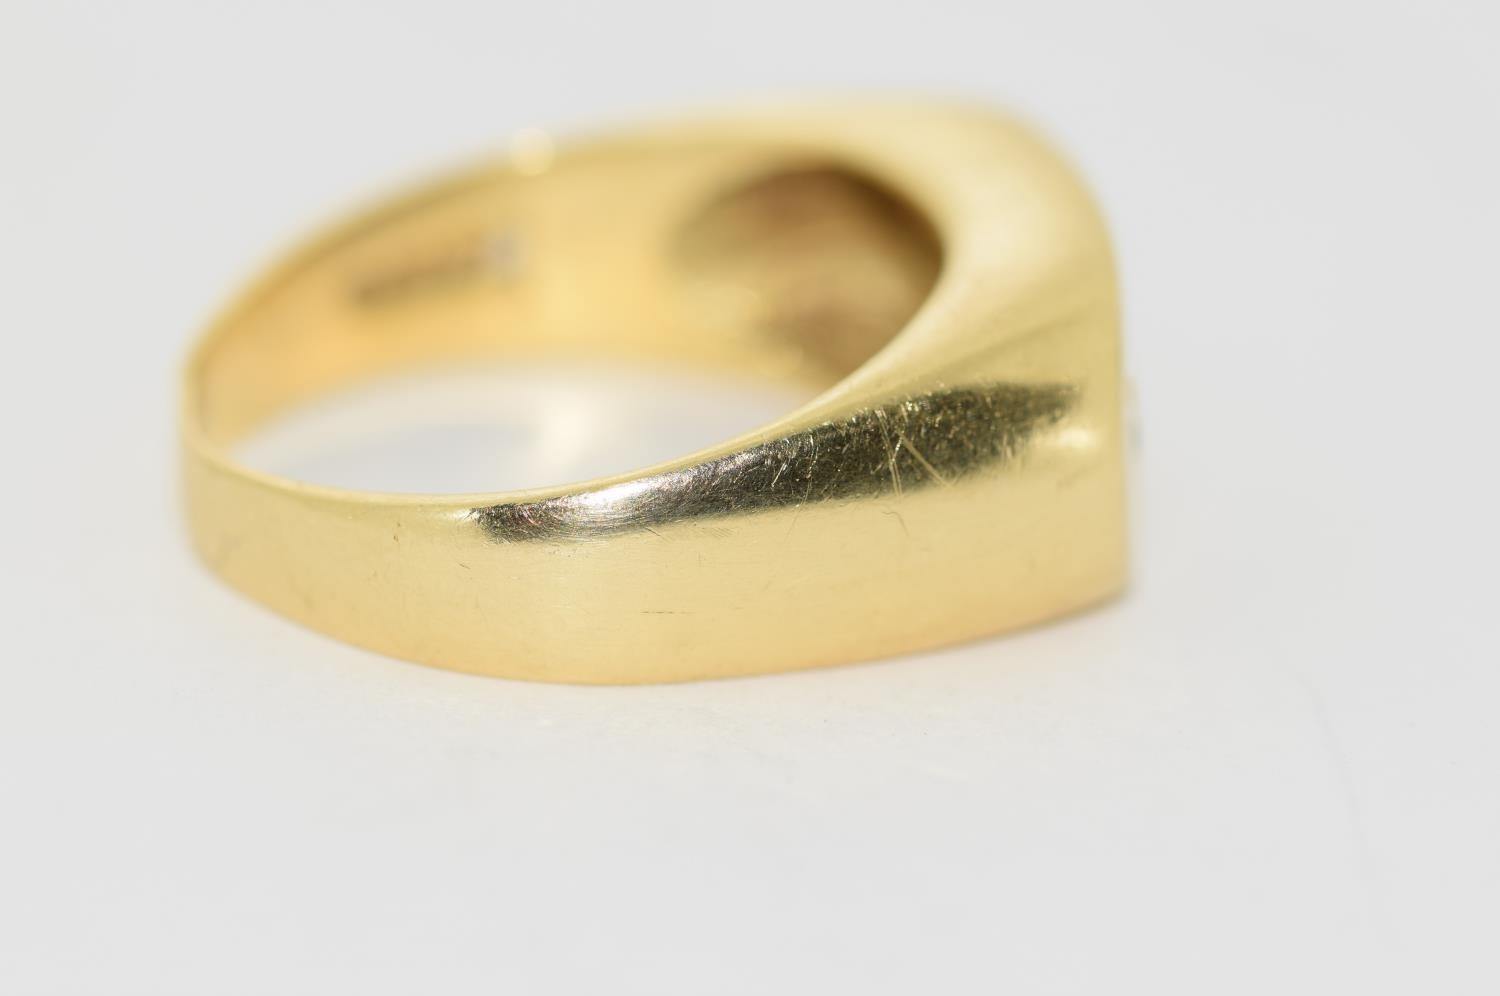 18ct gold Gypsy 3 stone diamond ring size S - Image 3 of 5